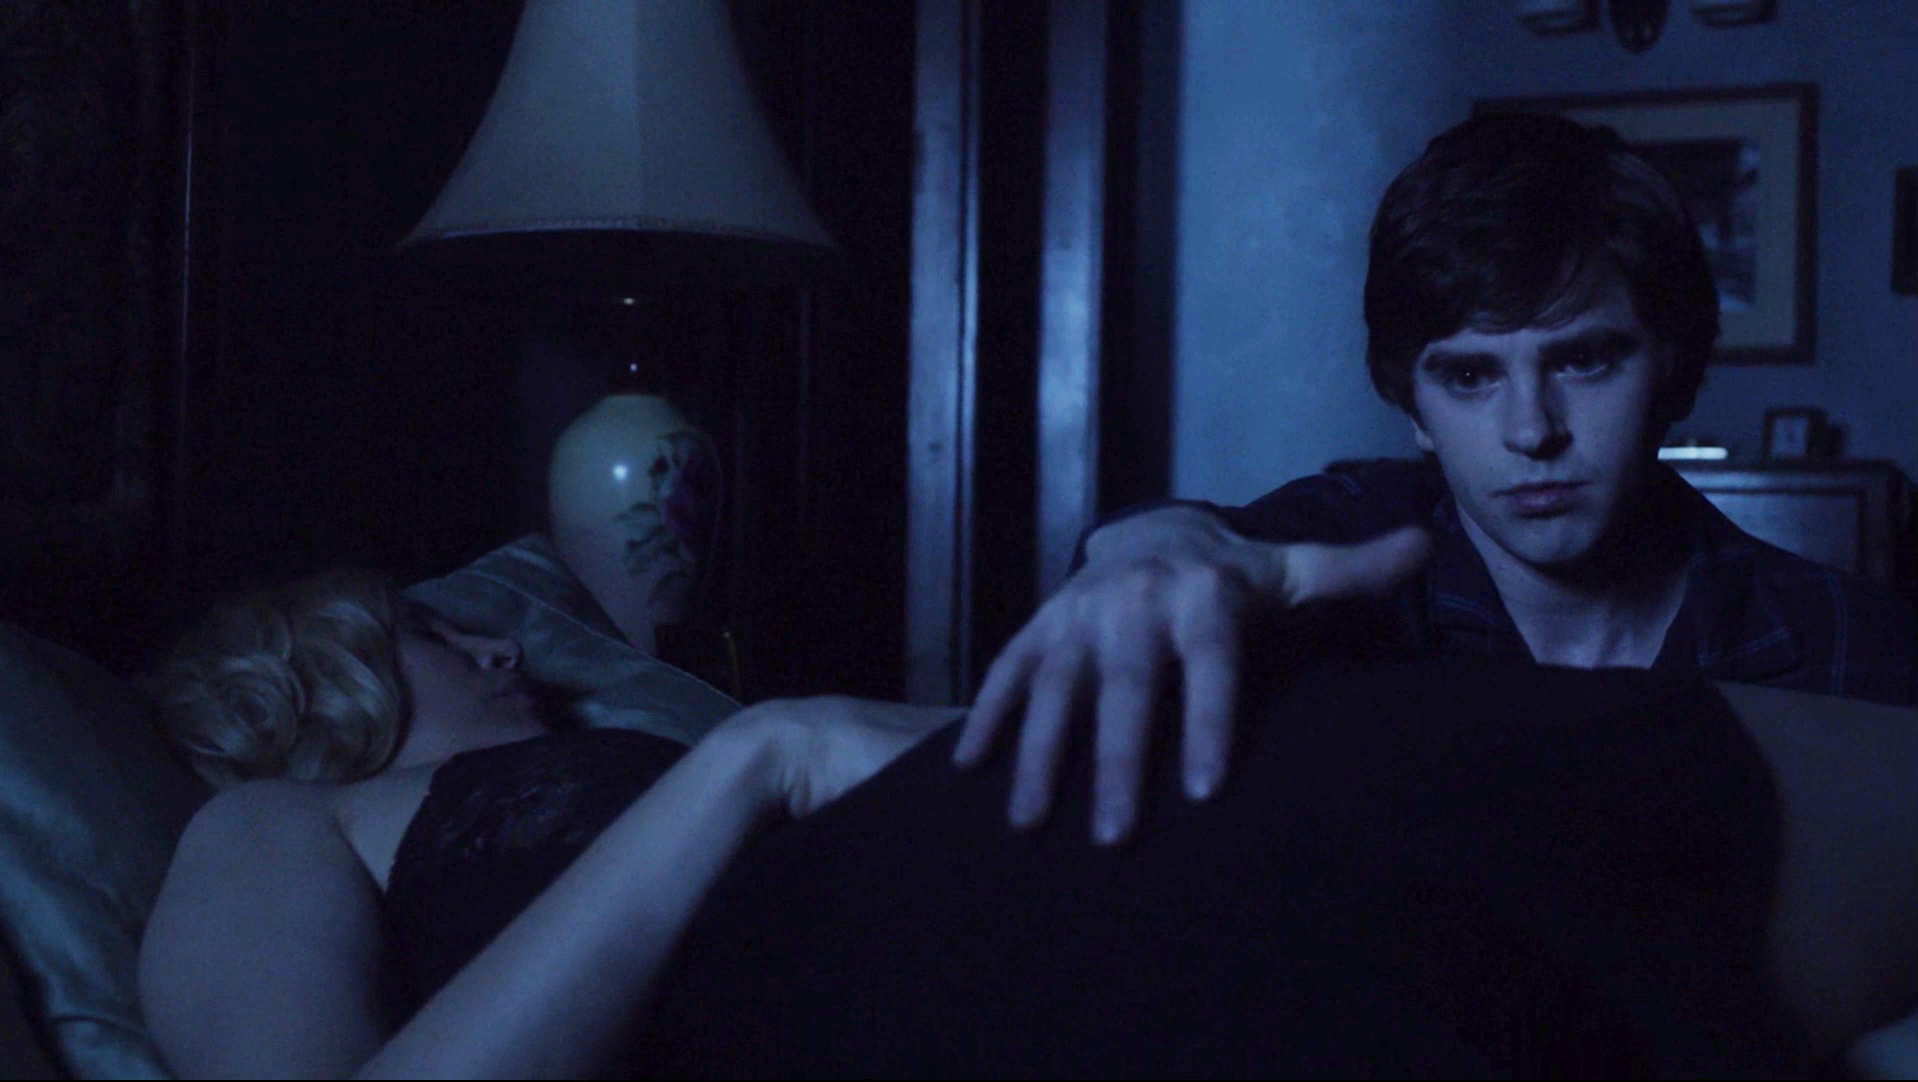 mother son spooning naked 'Bates Motel': 5 Creepiest Mother-Son Moments [Video]